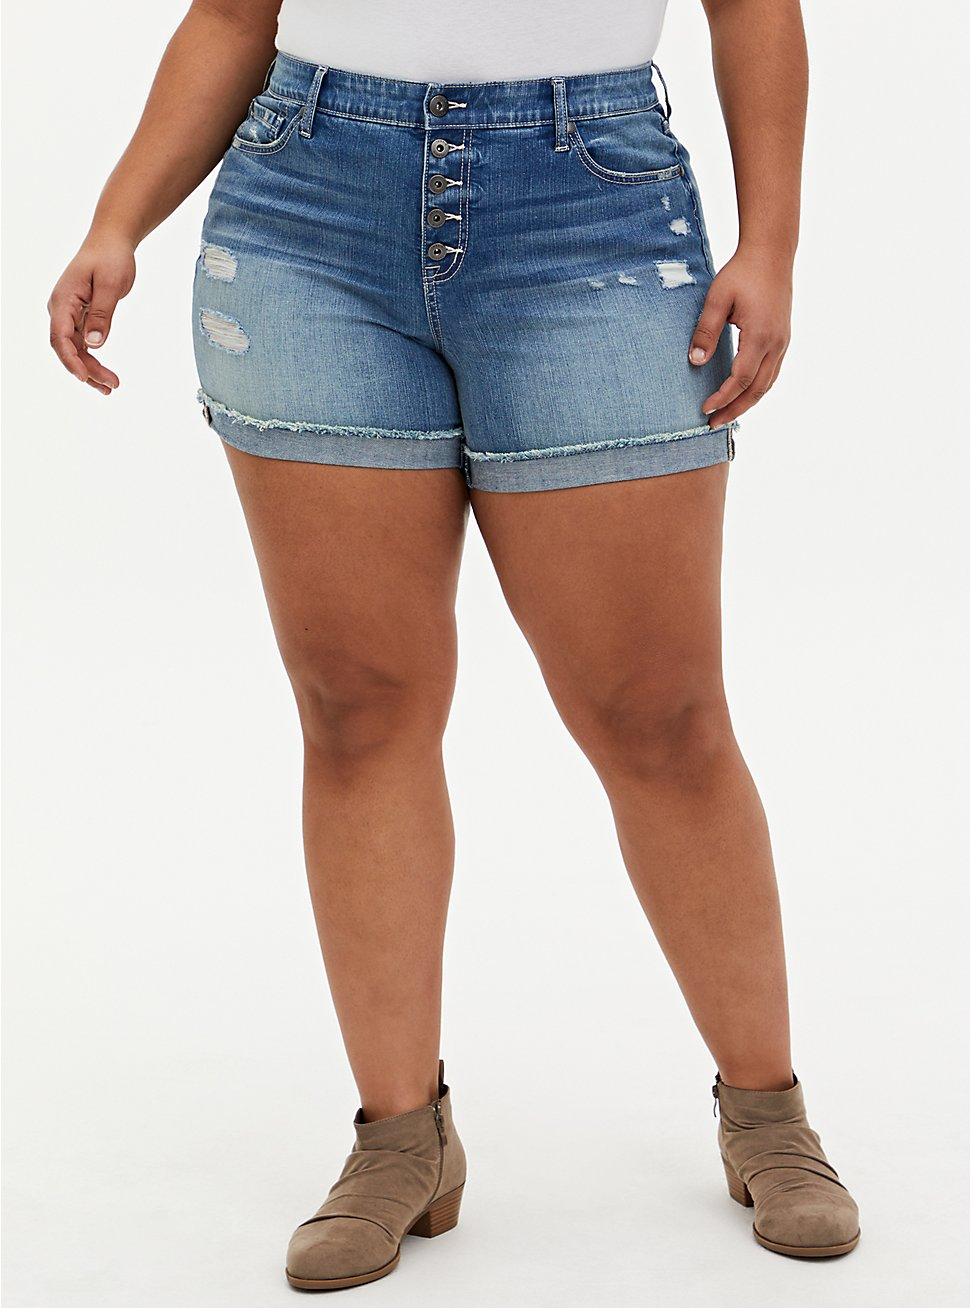 Plus Size High Rise Mid Short - Vintage Stretch Medium Wash , ROLL OUT, hi-res